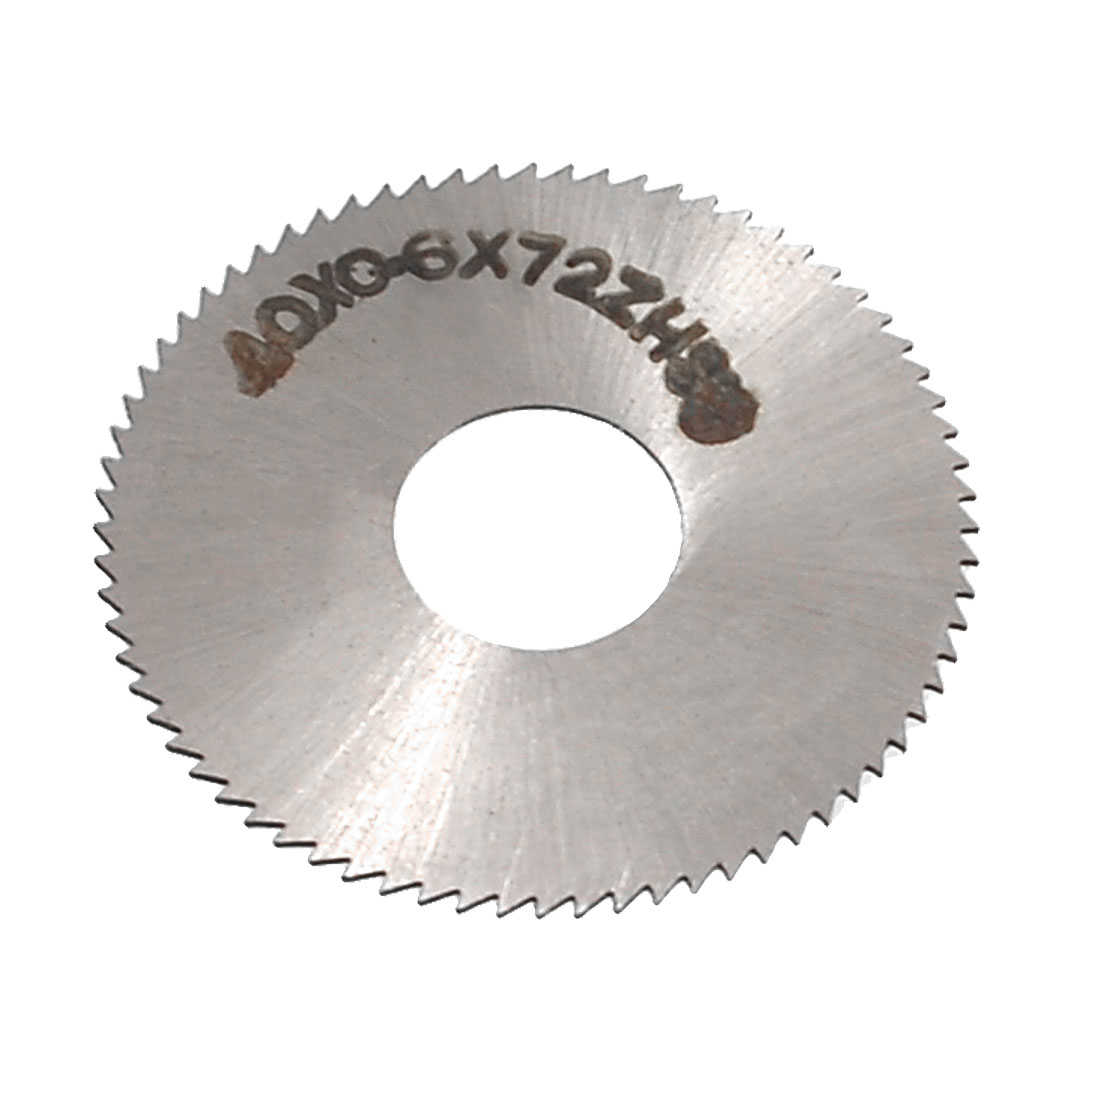 Unique Bargains 40mm Cutting Dia 0.6mm Thick 72T Saw Milling Cutter